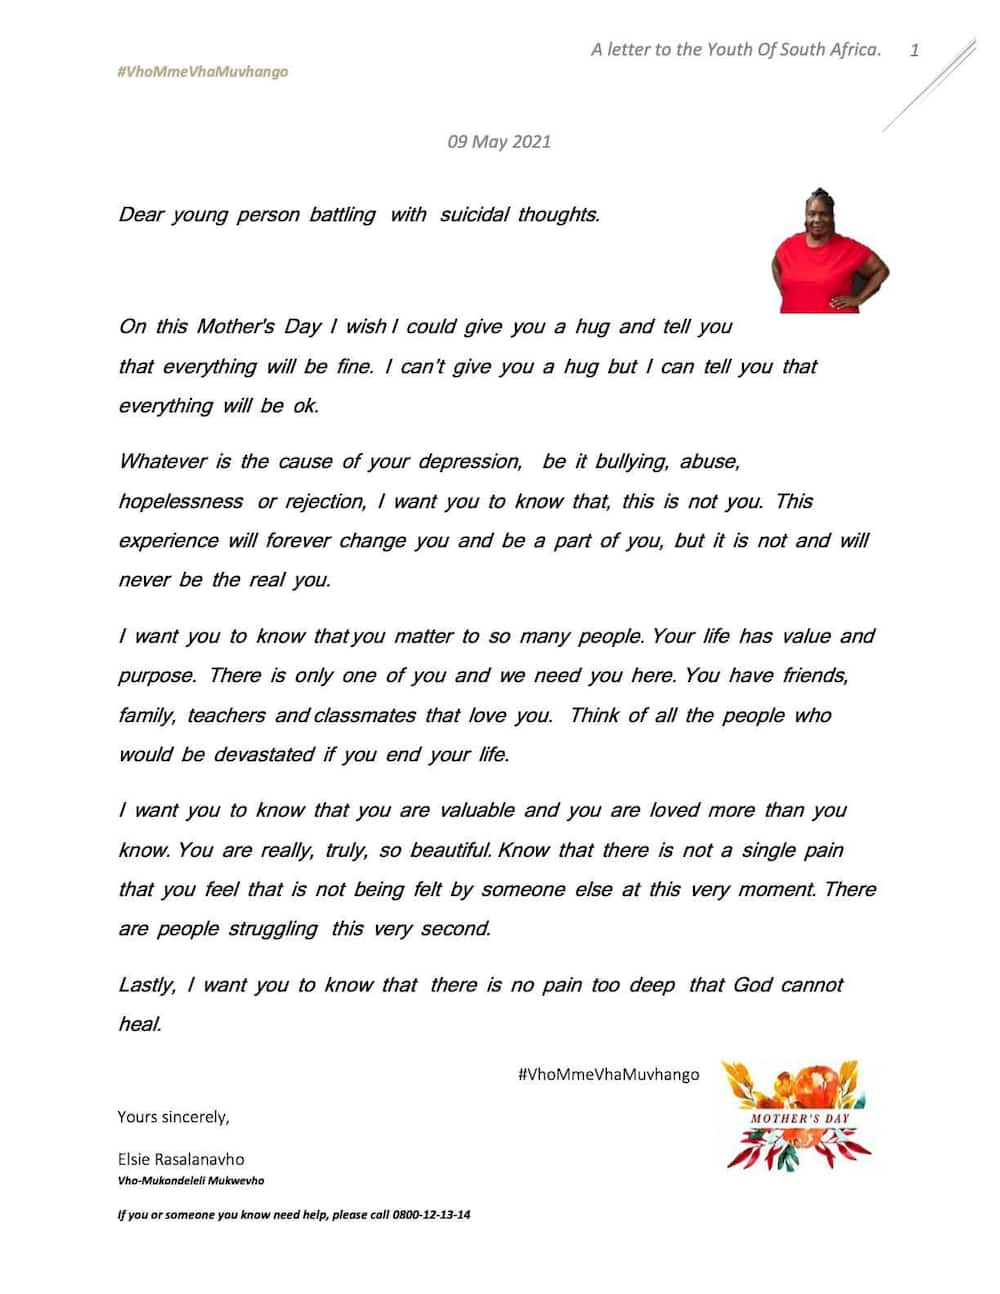 Muvhango mothers write letters to the youth in commemoration of Mother's Day